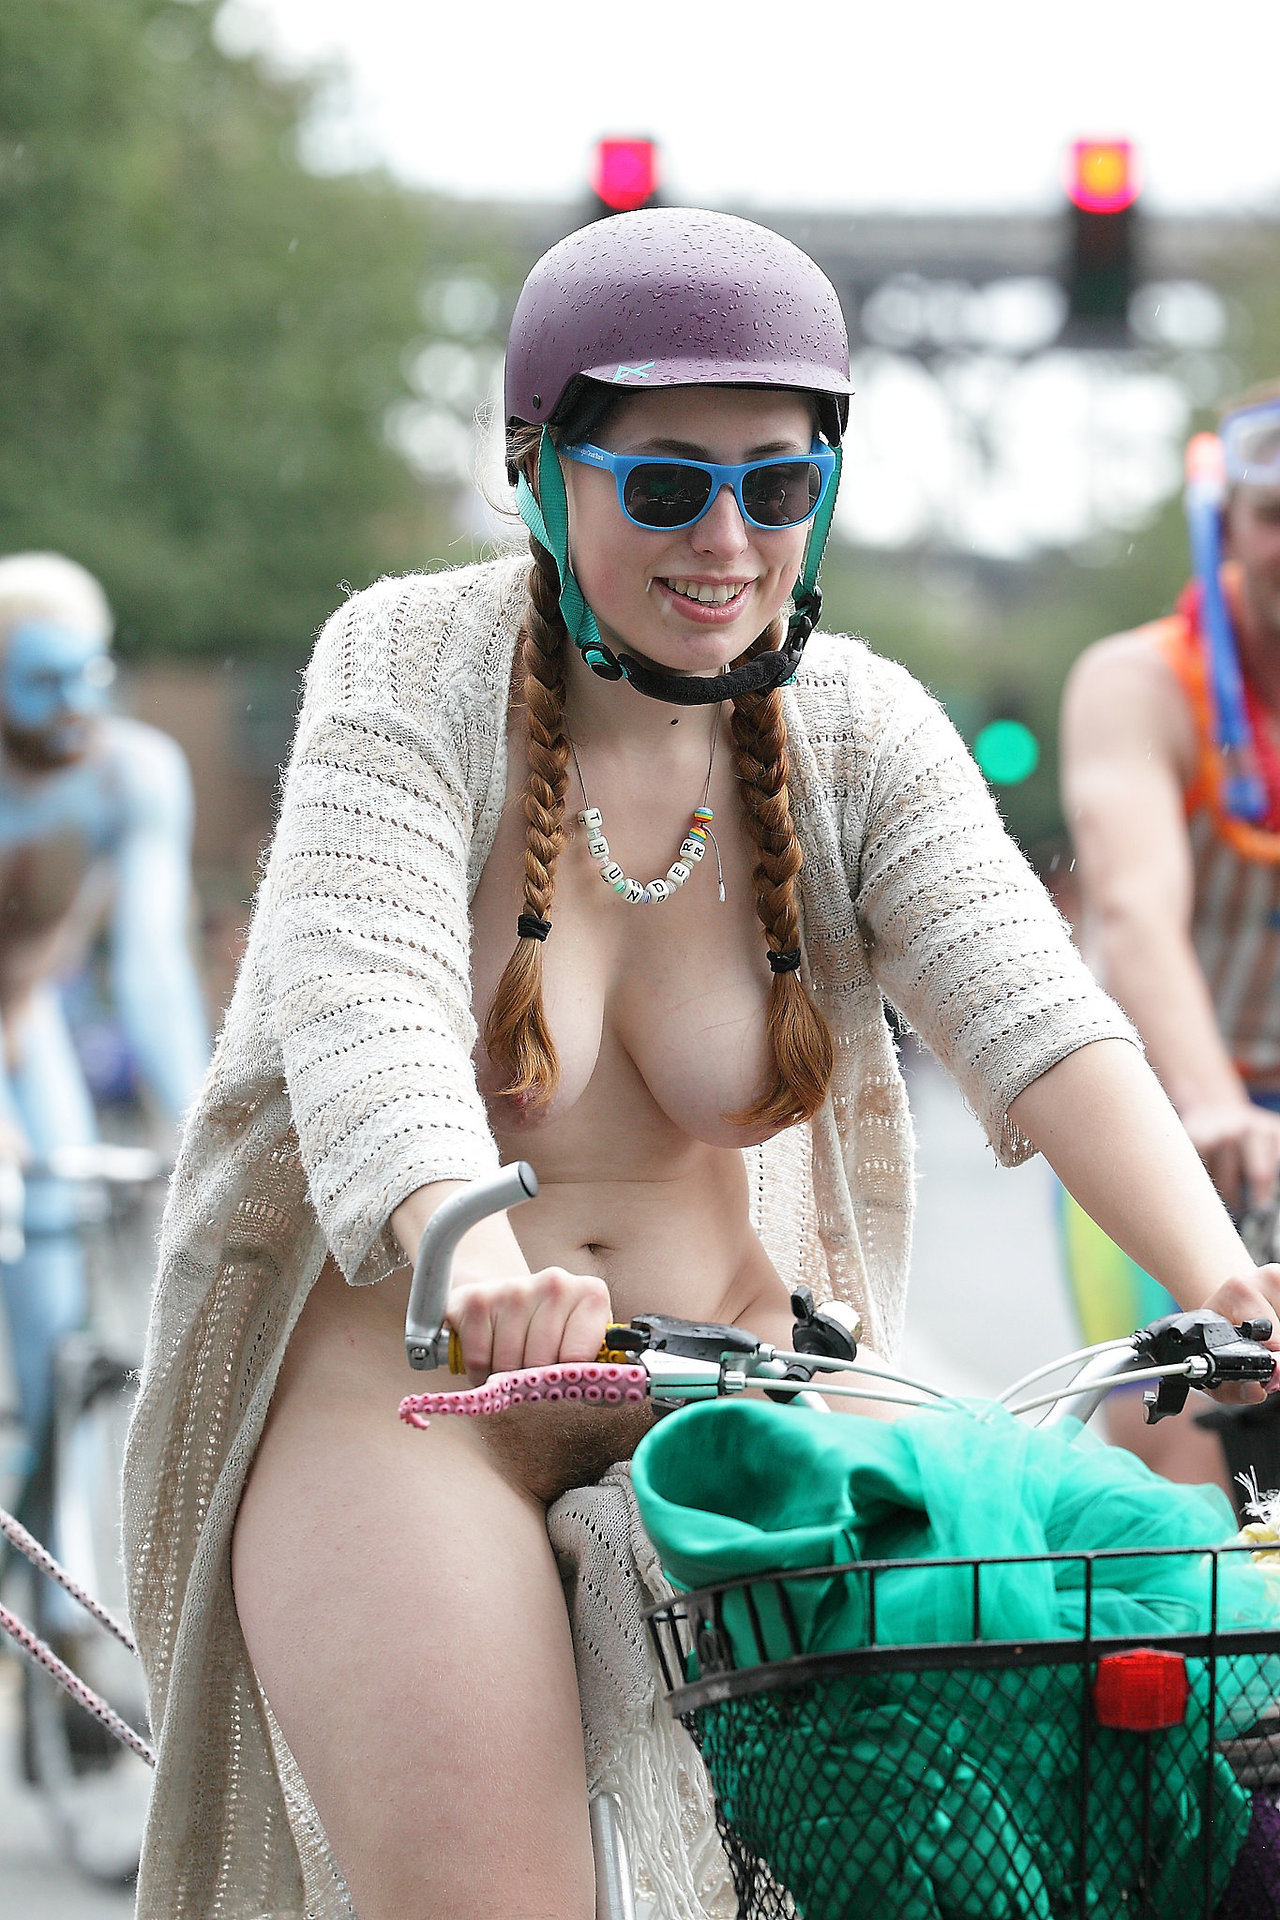 Public events nudity pictures with close-up  -